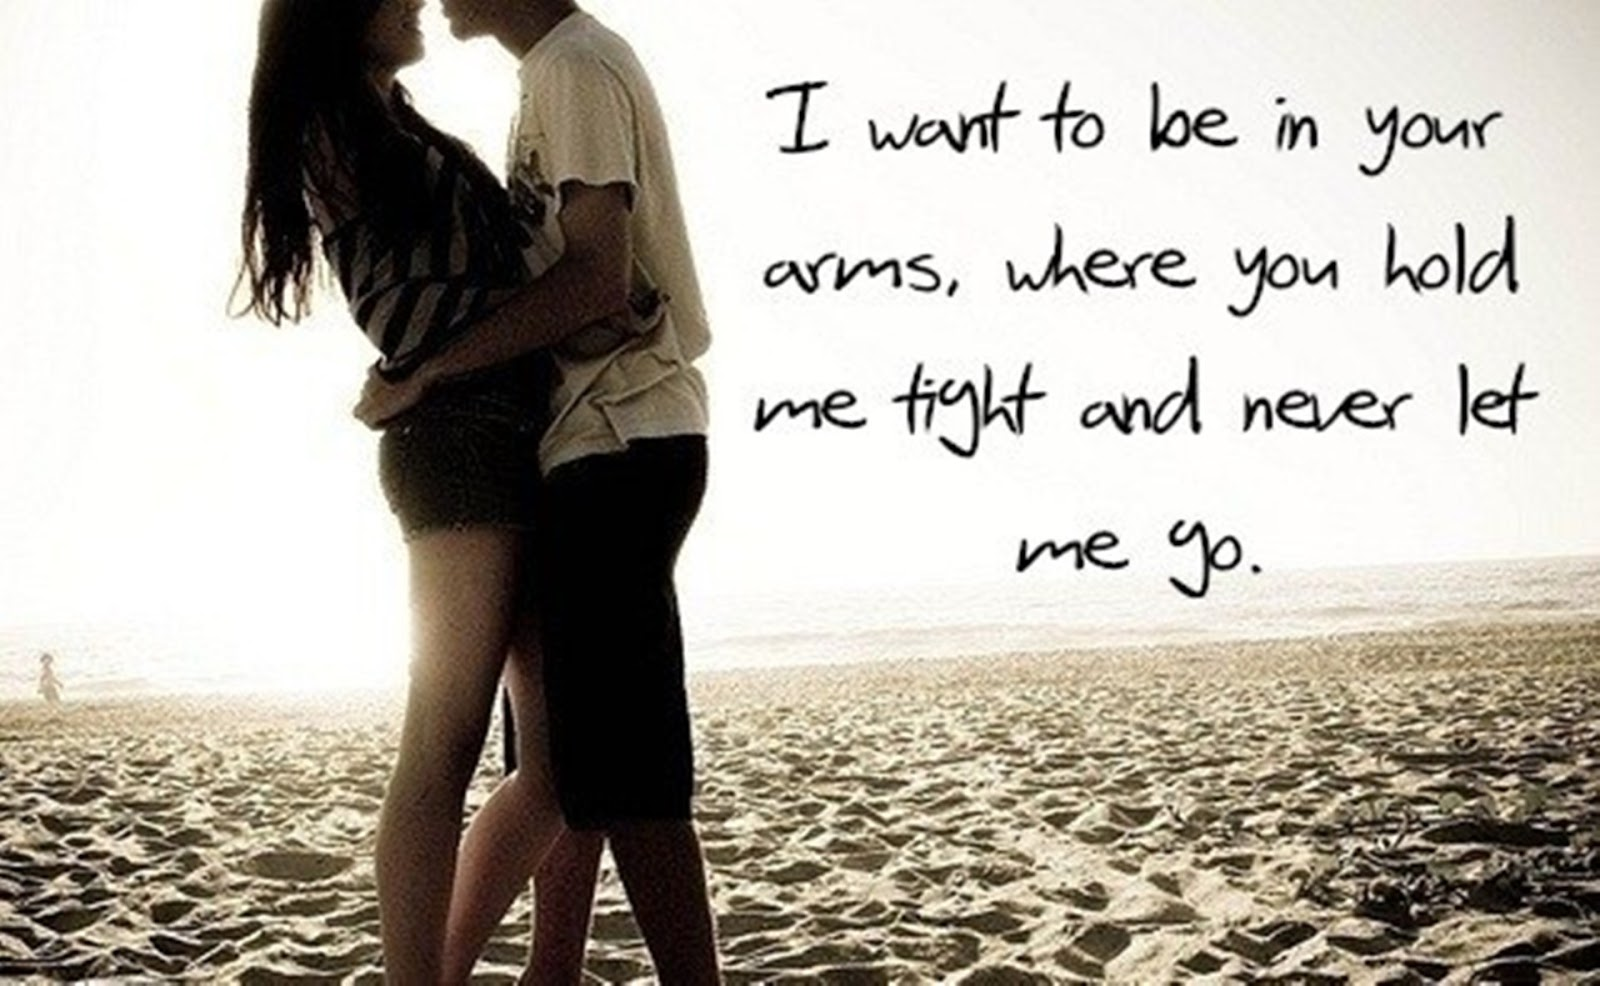 Cute Love Quotes Him Cute Love Quotes For Him  ❤Love Quotes For Him And Her❤